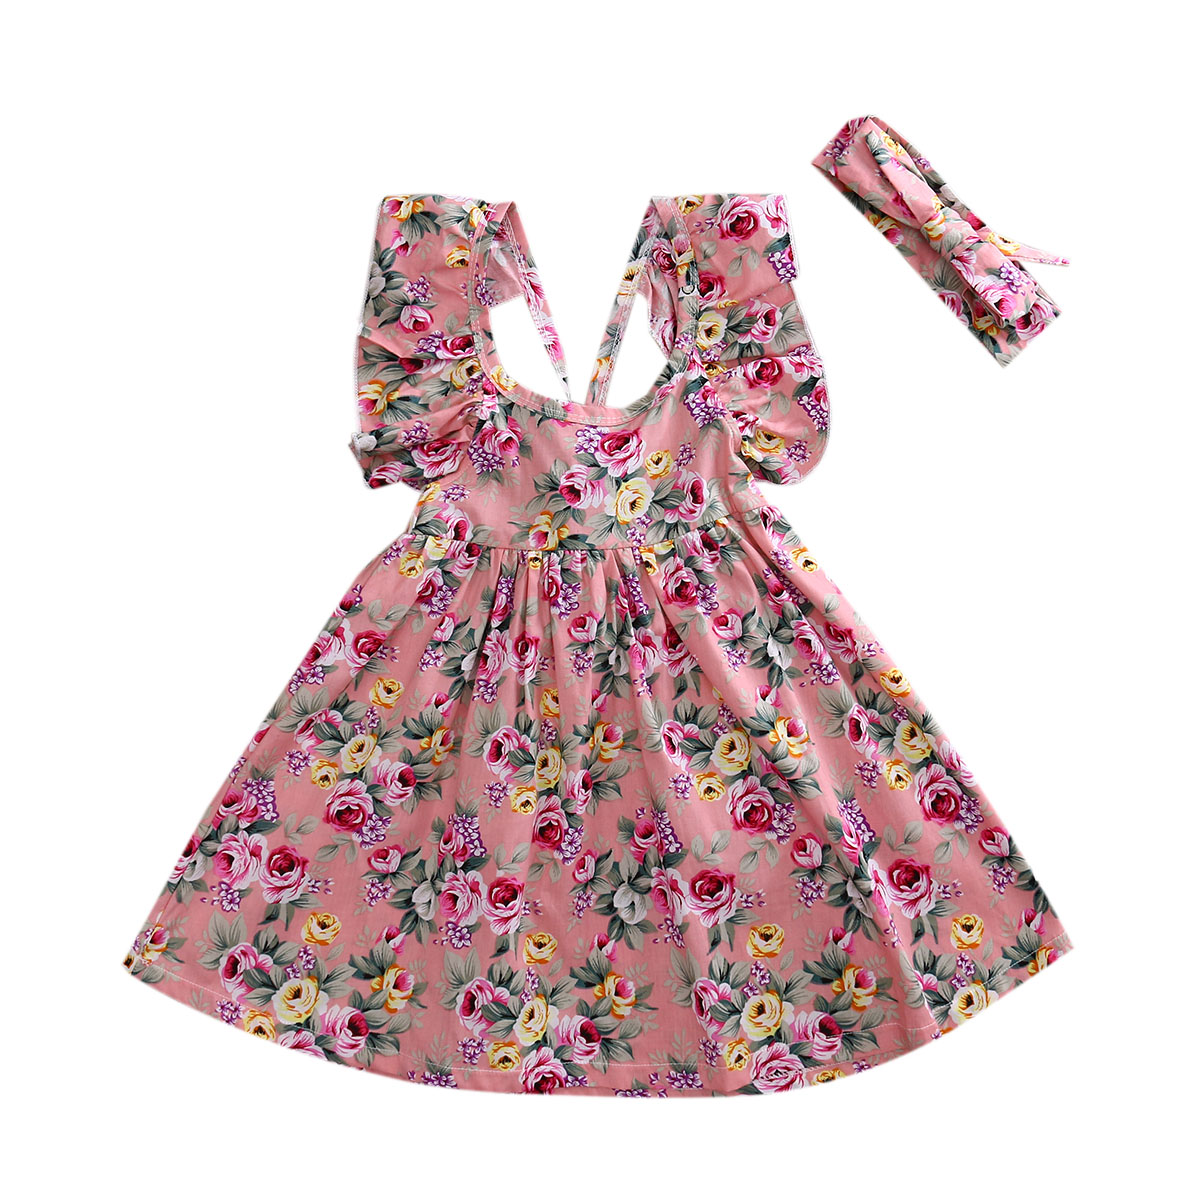 Kids Girls Toddler Baby Sleeveless Princess Dress Flower Tutu Dresses 2pcs Set kid girl print dress 2017 summer girls dresses toddler baby girl ruffle floral sleeveless dress sundress briefs bottom 2pcs set flower girls dresses